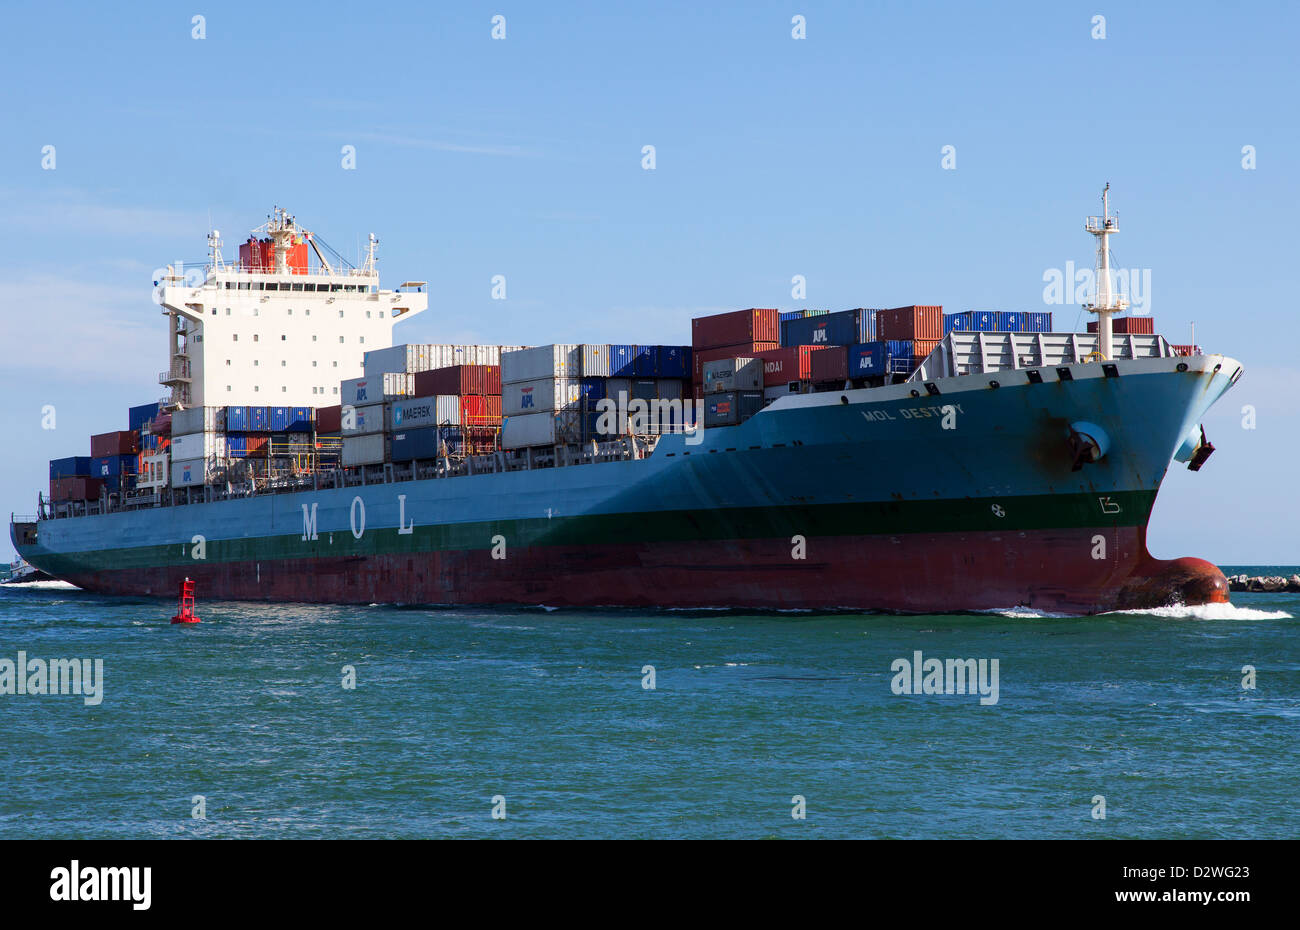 Cargo Ship Arriving in Miami, USA - Stock Image